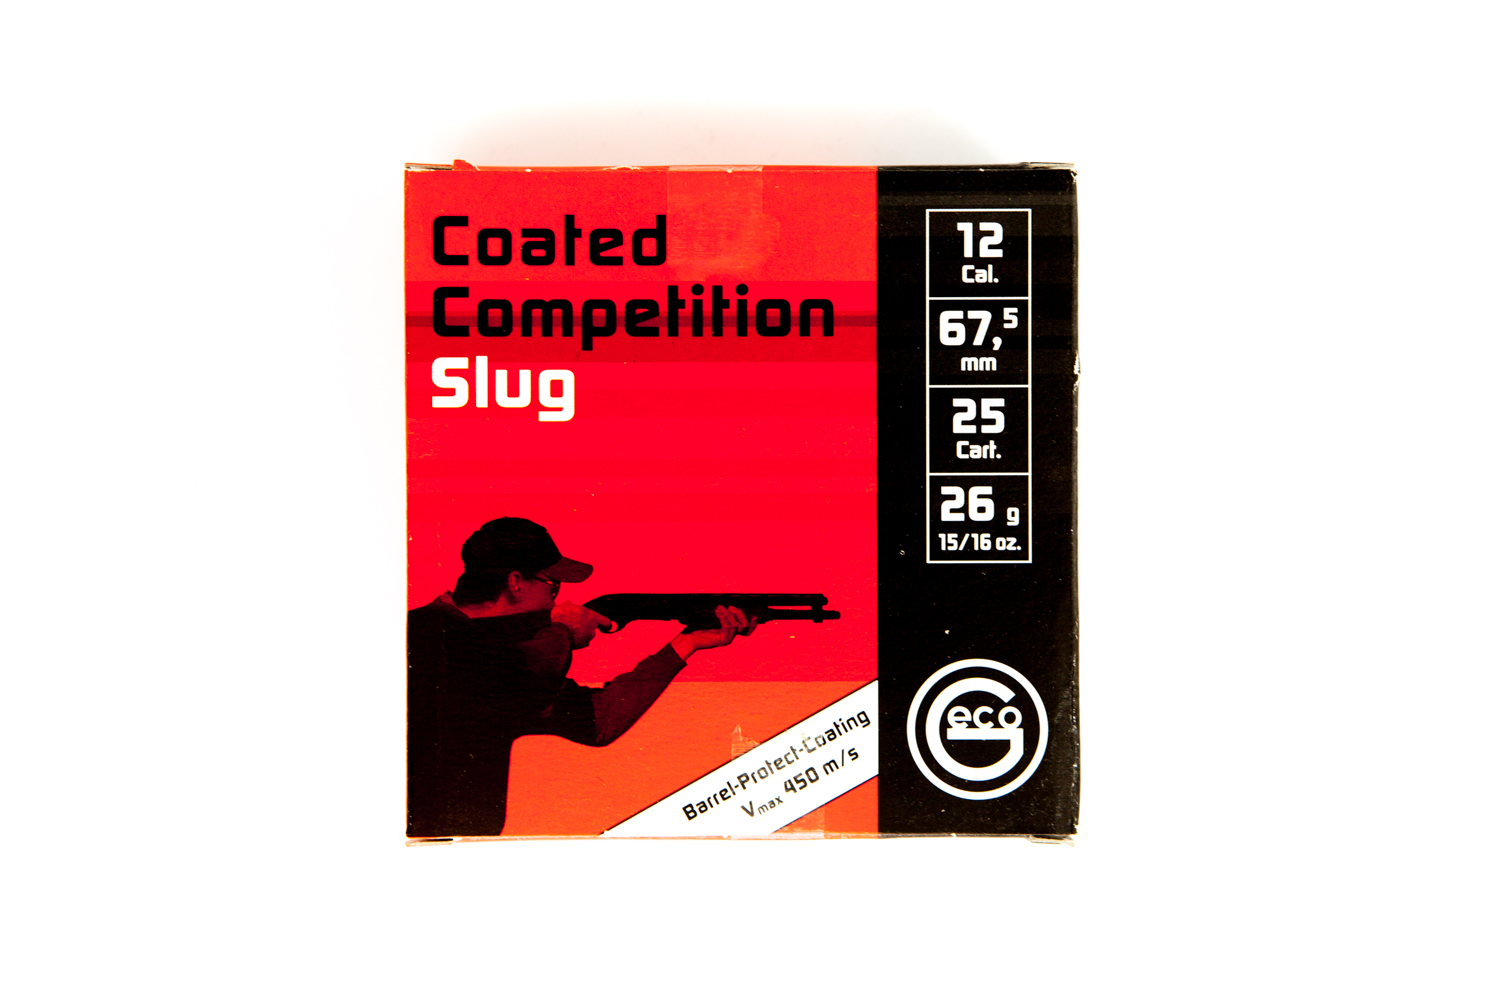 Geco 12/67,5 Competition Slug